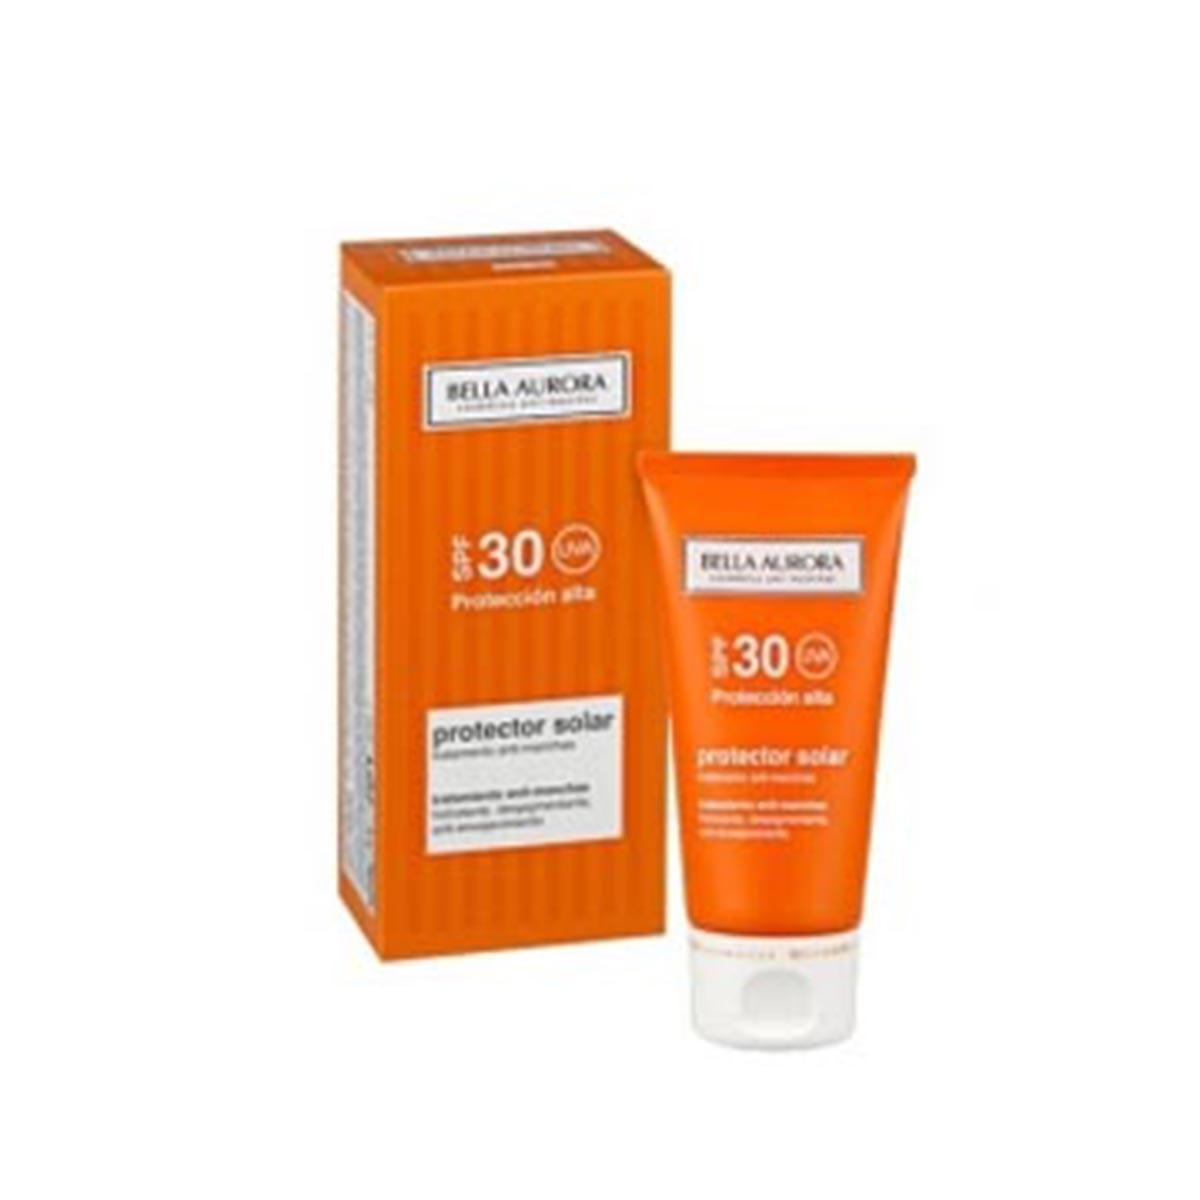 Bella aurora Solar Cream Spf30 50 ml